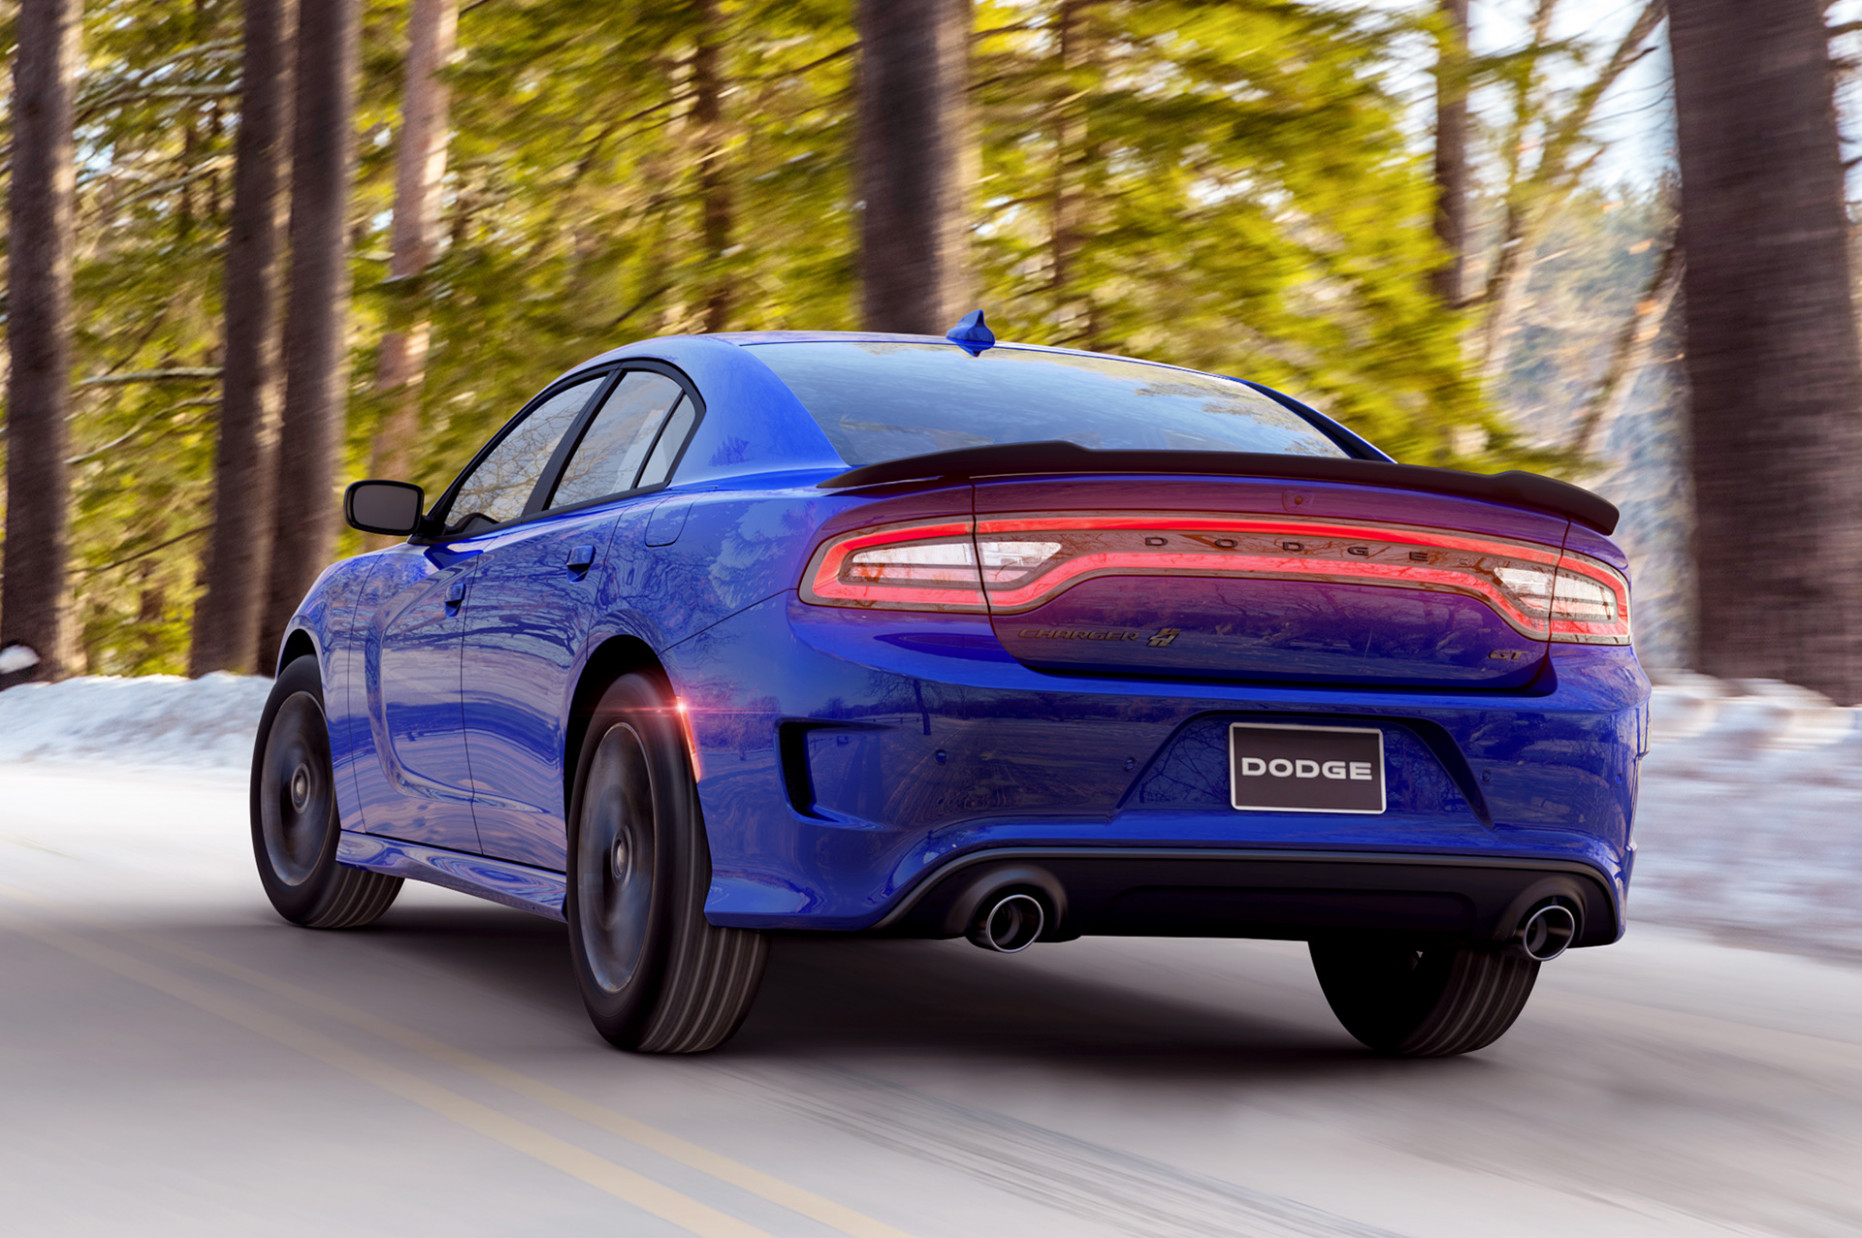 6 Dodge Charger GT AWD, Ferrari EV, Cadillac bringing back real ..